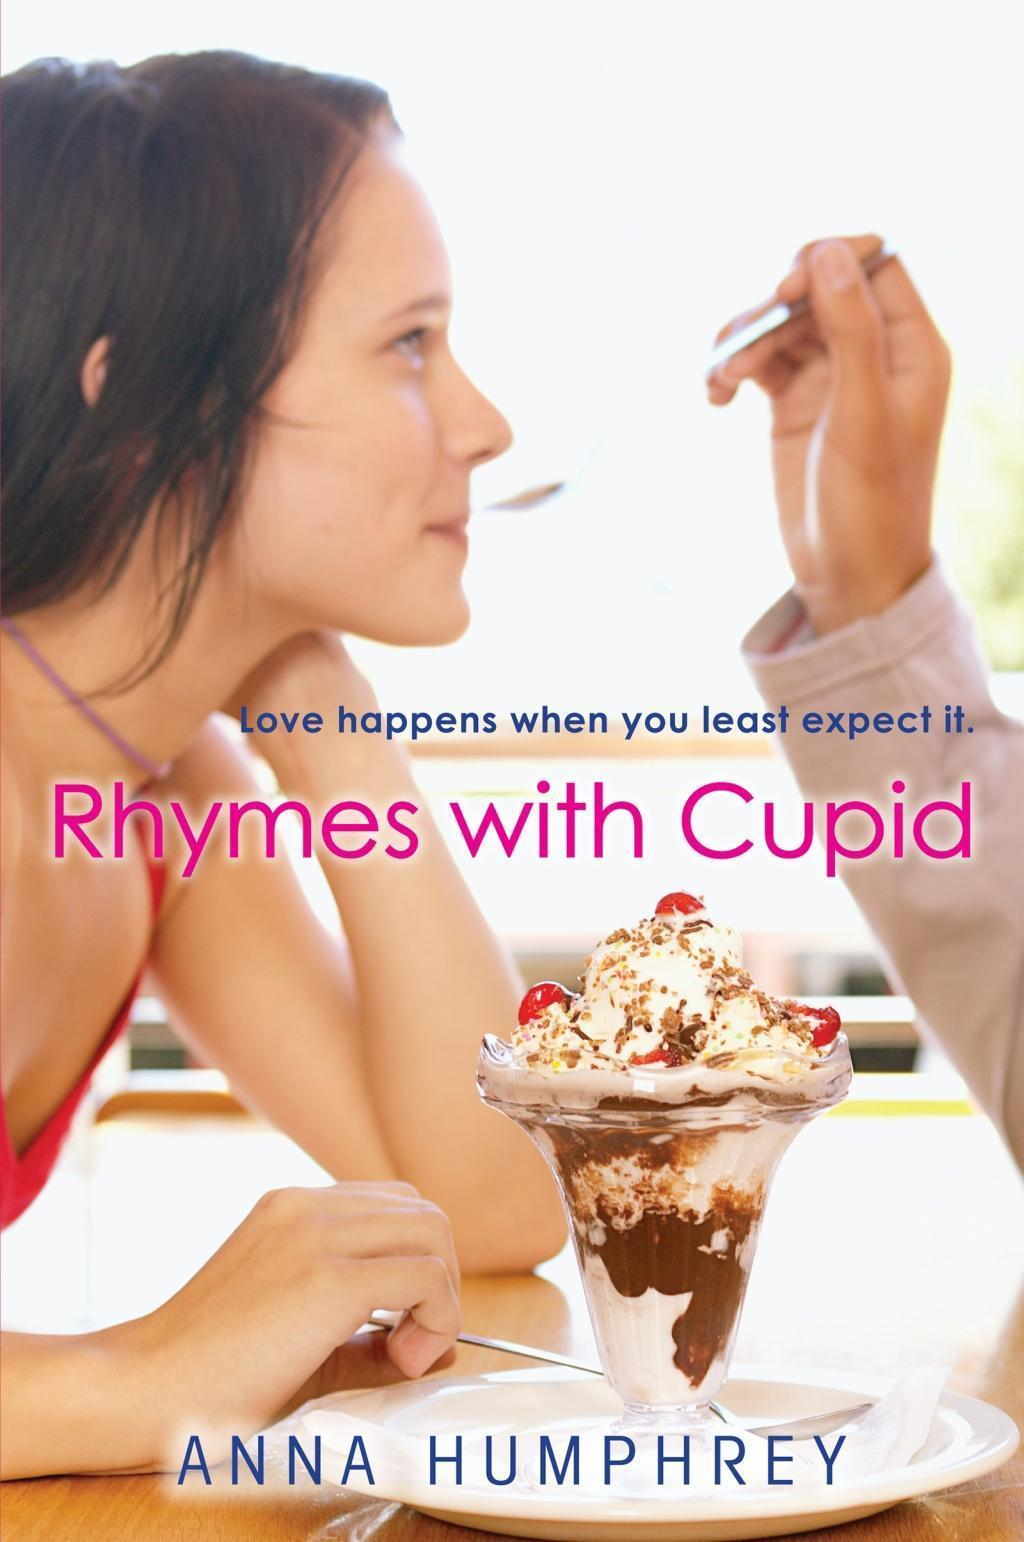 Rhymes with Cupid